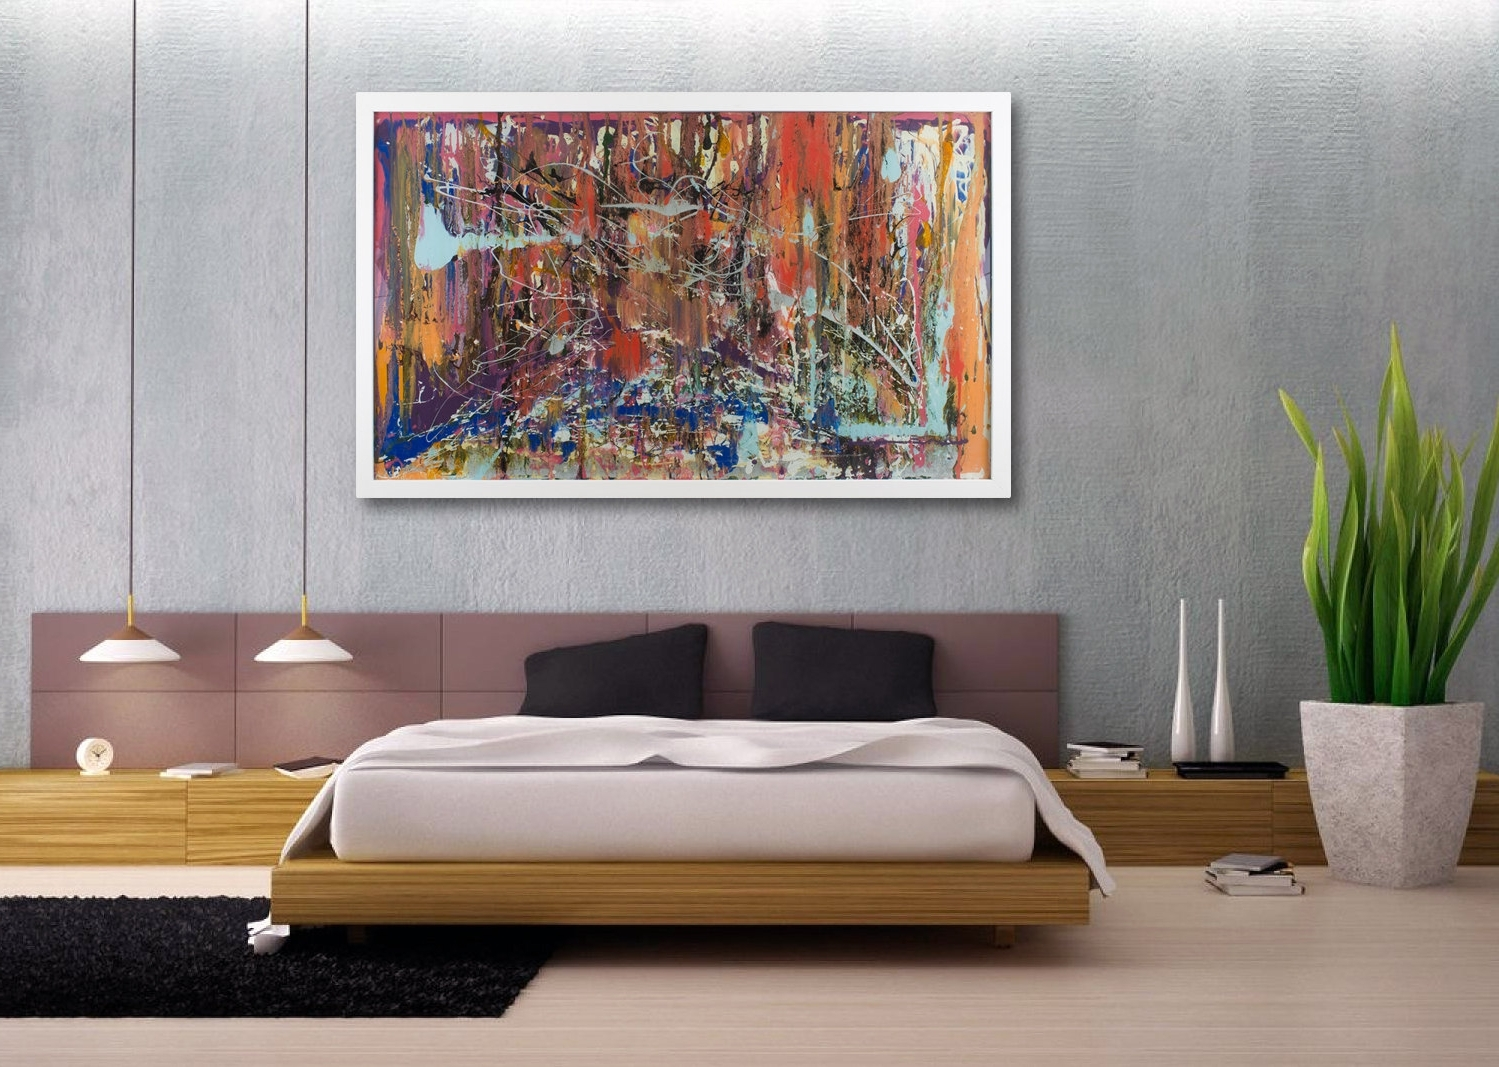 Most Recently Released Cheap Contemporary Wall Art With Regard To Innovative Way Modern Wall Decor Room — Joanne Russo Homesjoanne (View 8 of 15)